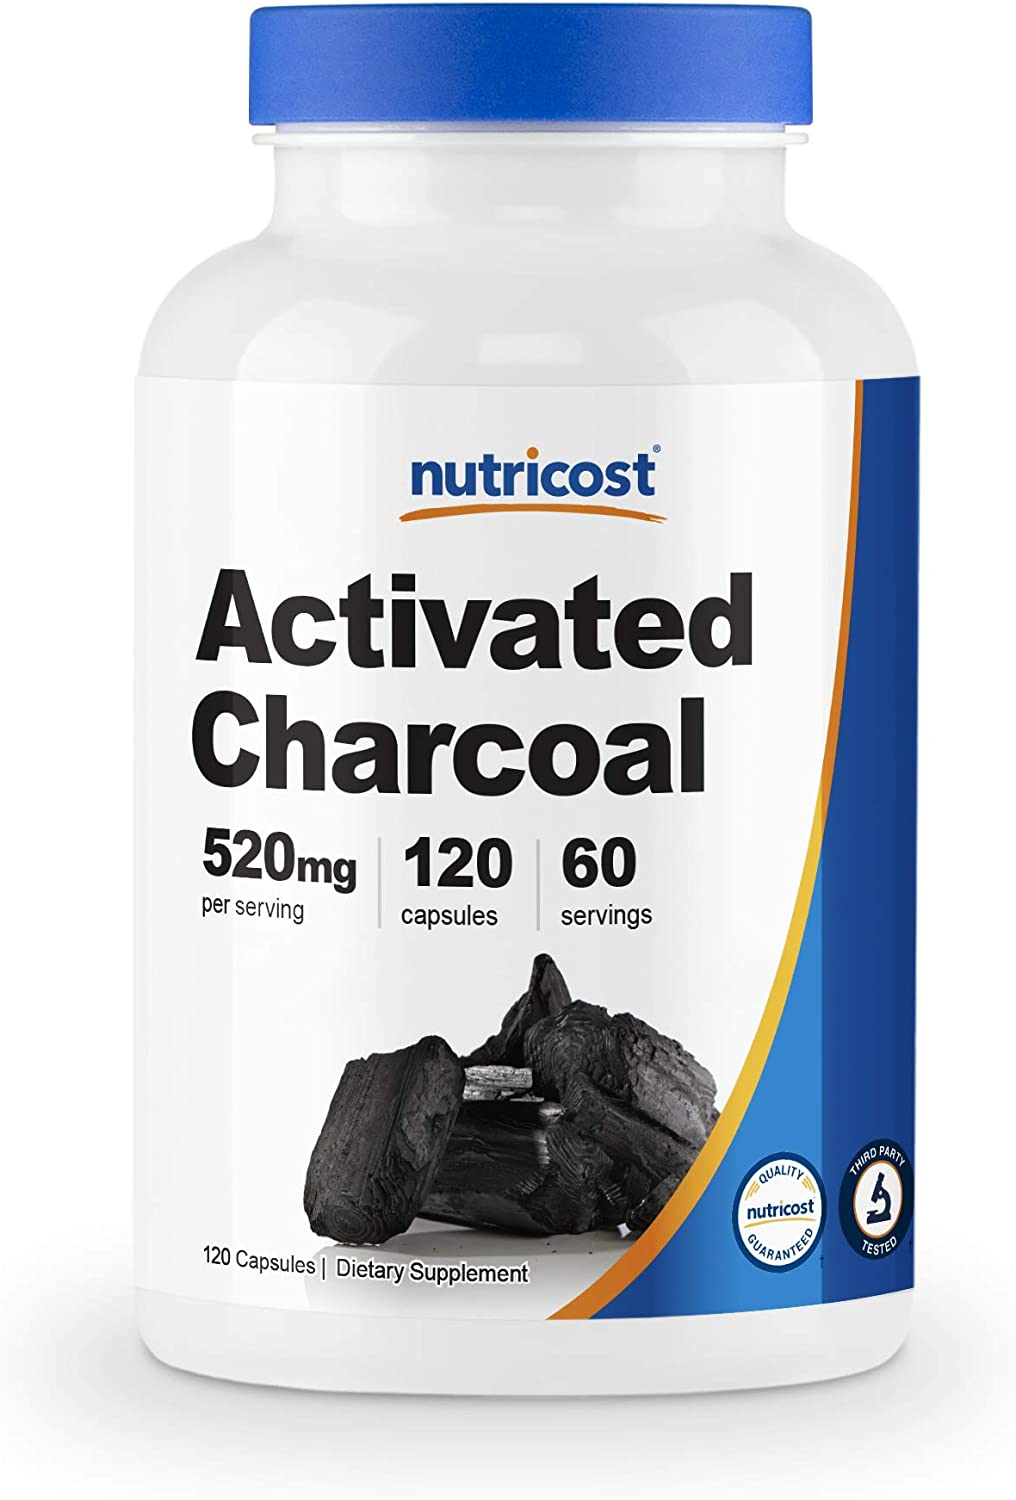 Nutricost Activated Charcoal 120 Capsules - Premium Activated Charcoal Powder, Non-GMO & Gluten Free (1 Bottle): Health & Personal Care